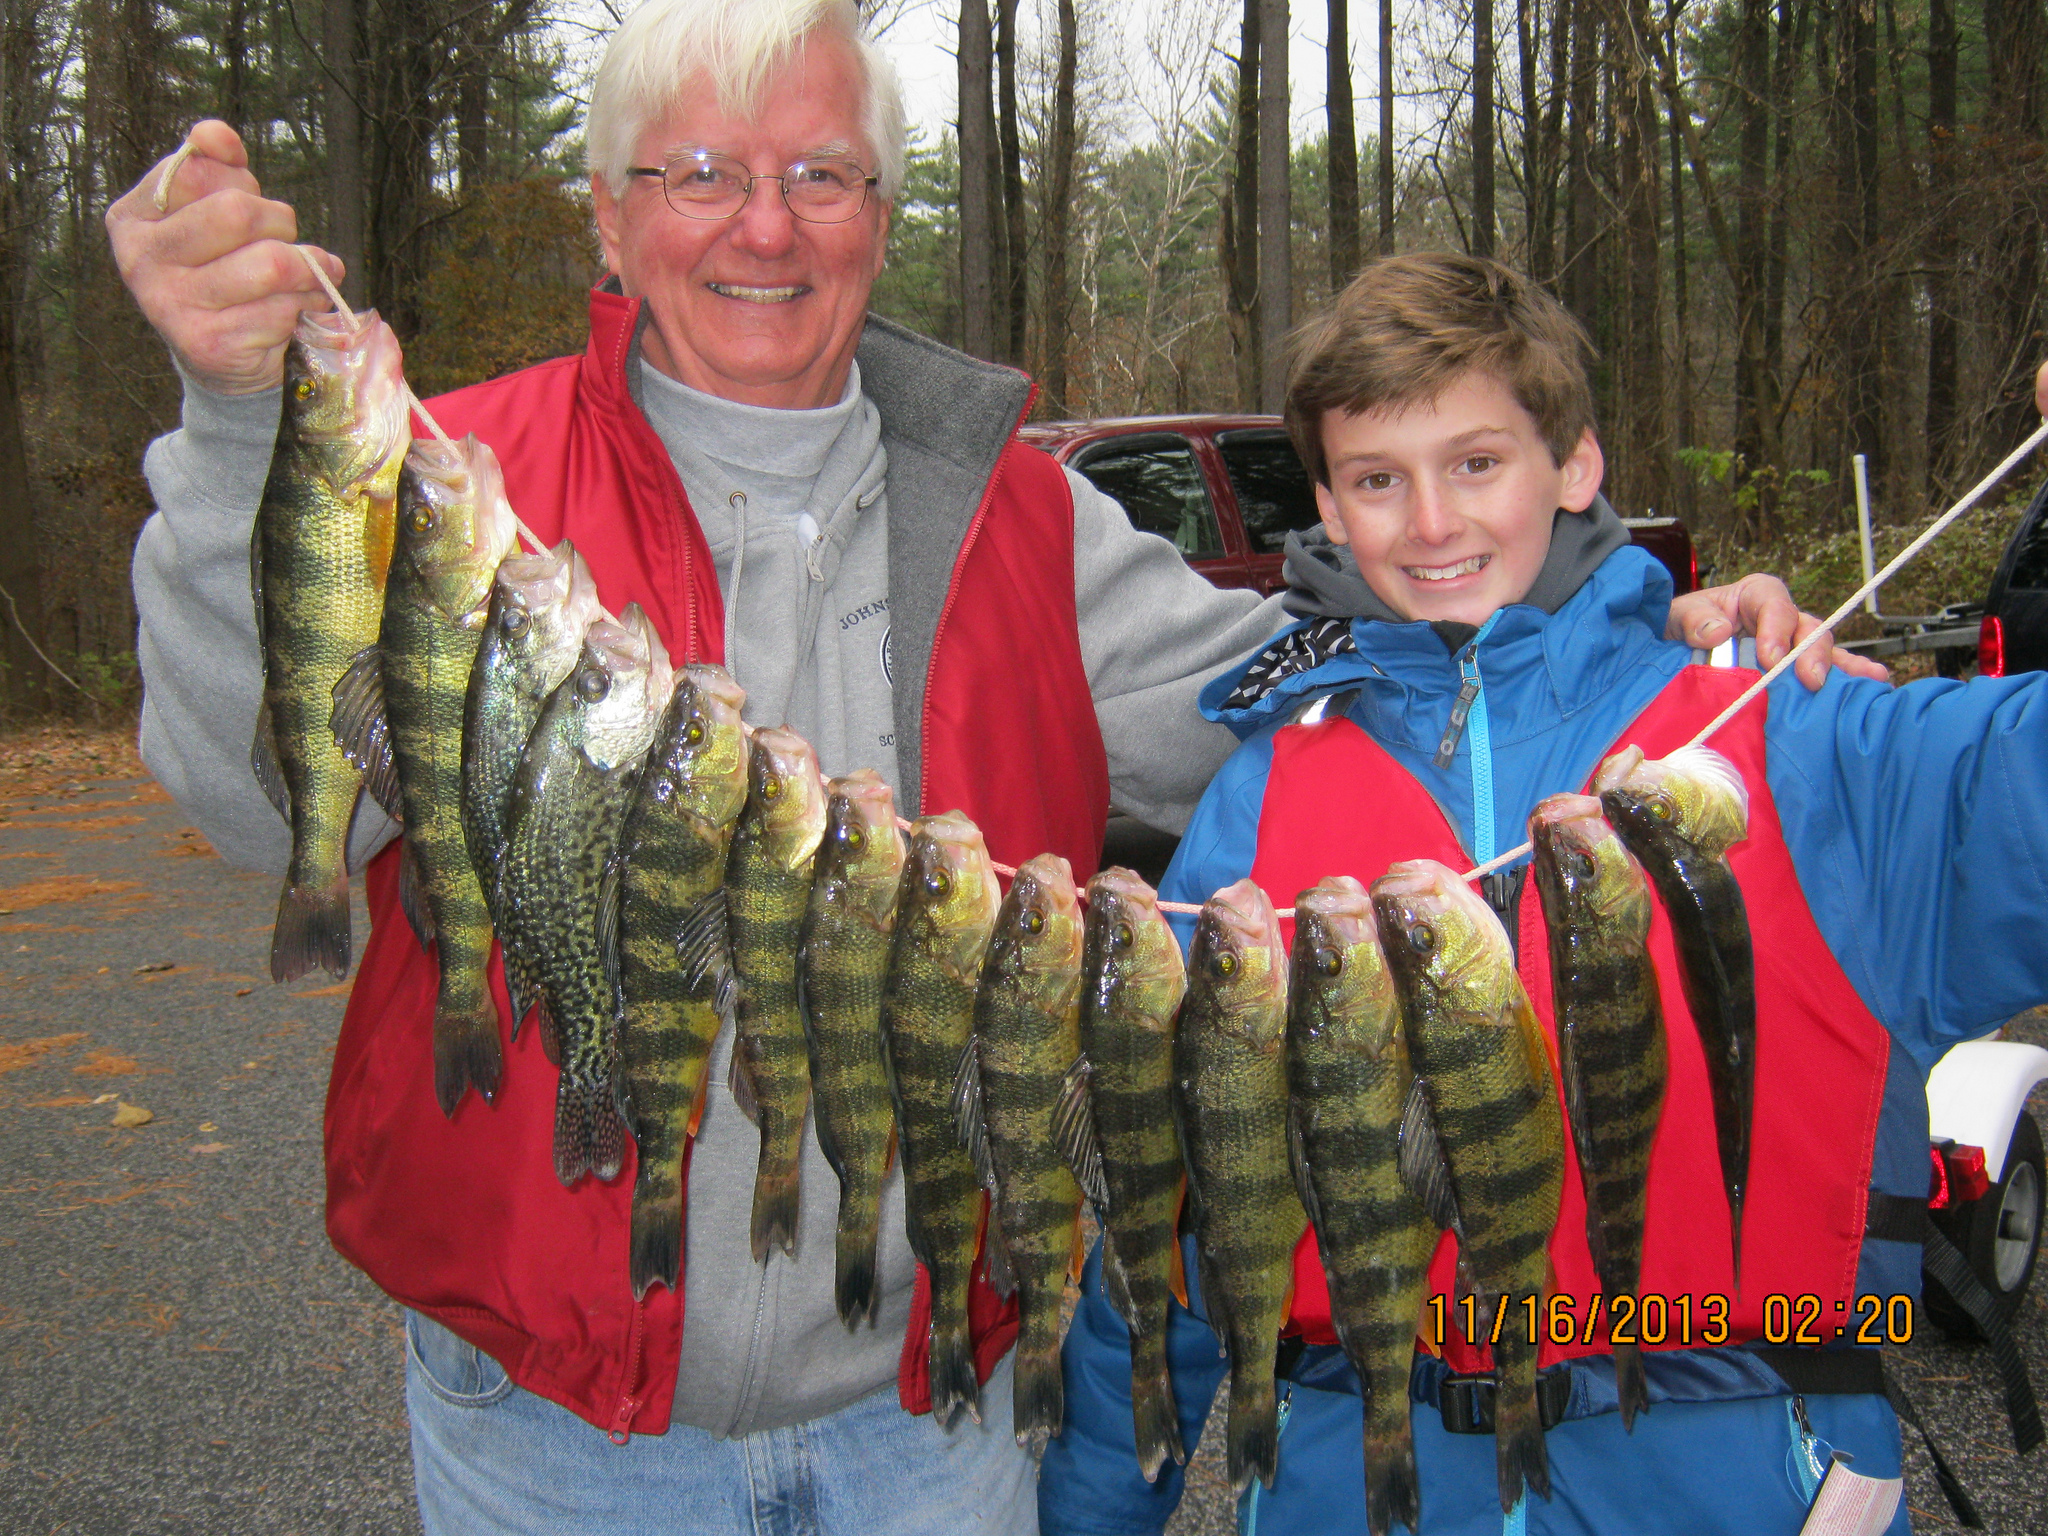 Bass pro and costa offer incentives for 2015 dnr volunteer for Md dnr fishing